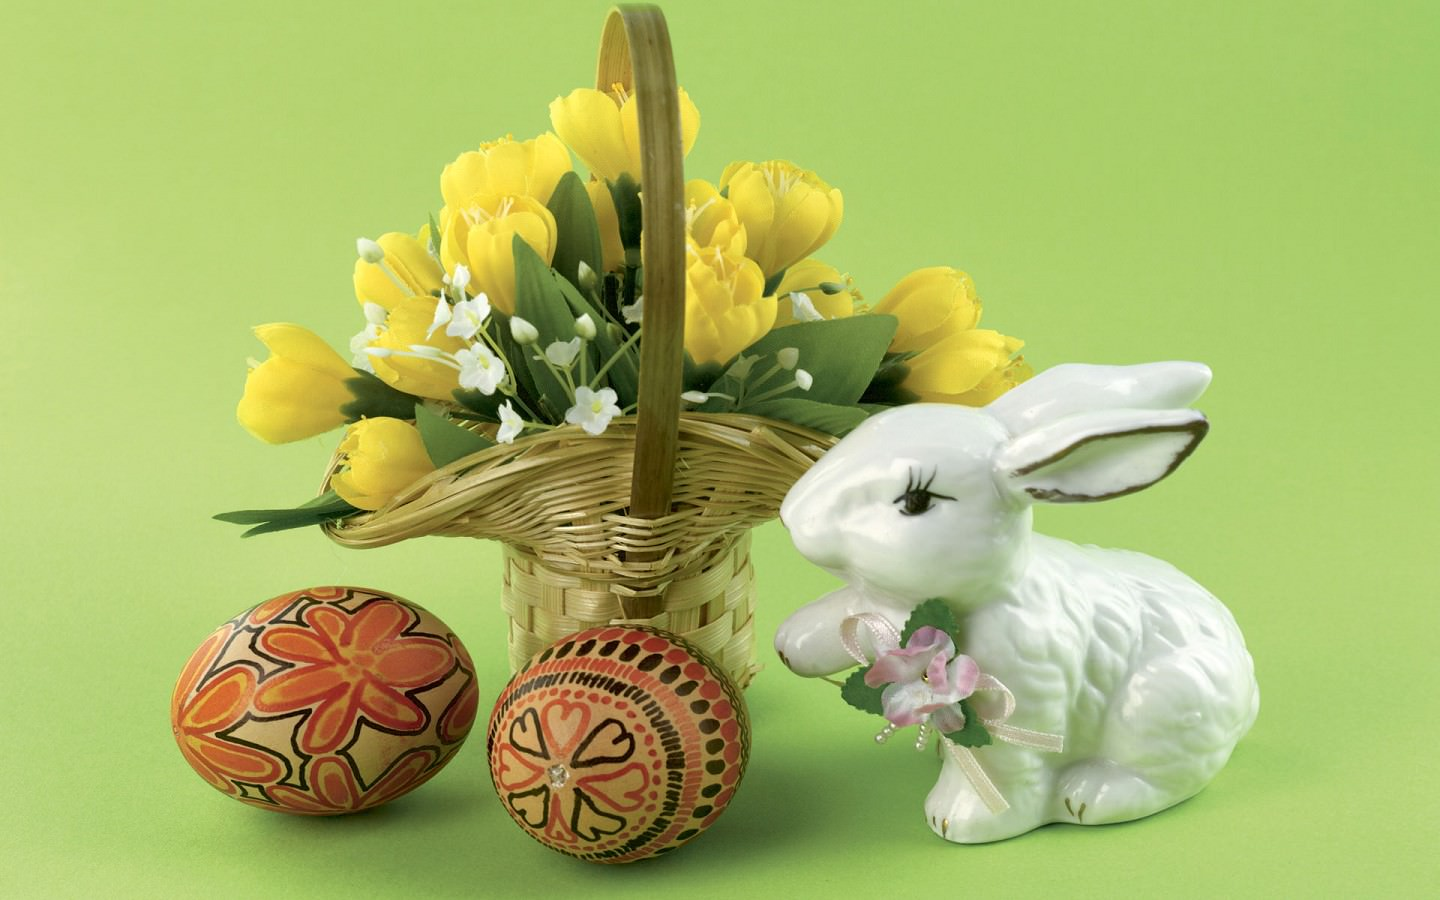 30 Easter Bunny Wallpapers Backgrounds Images 1440x900